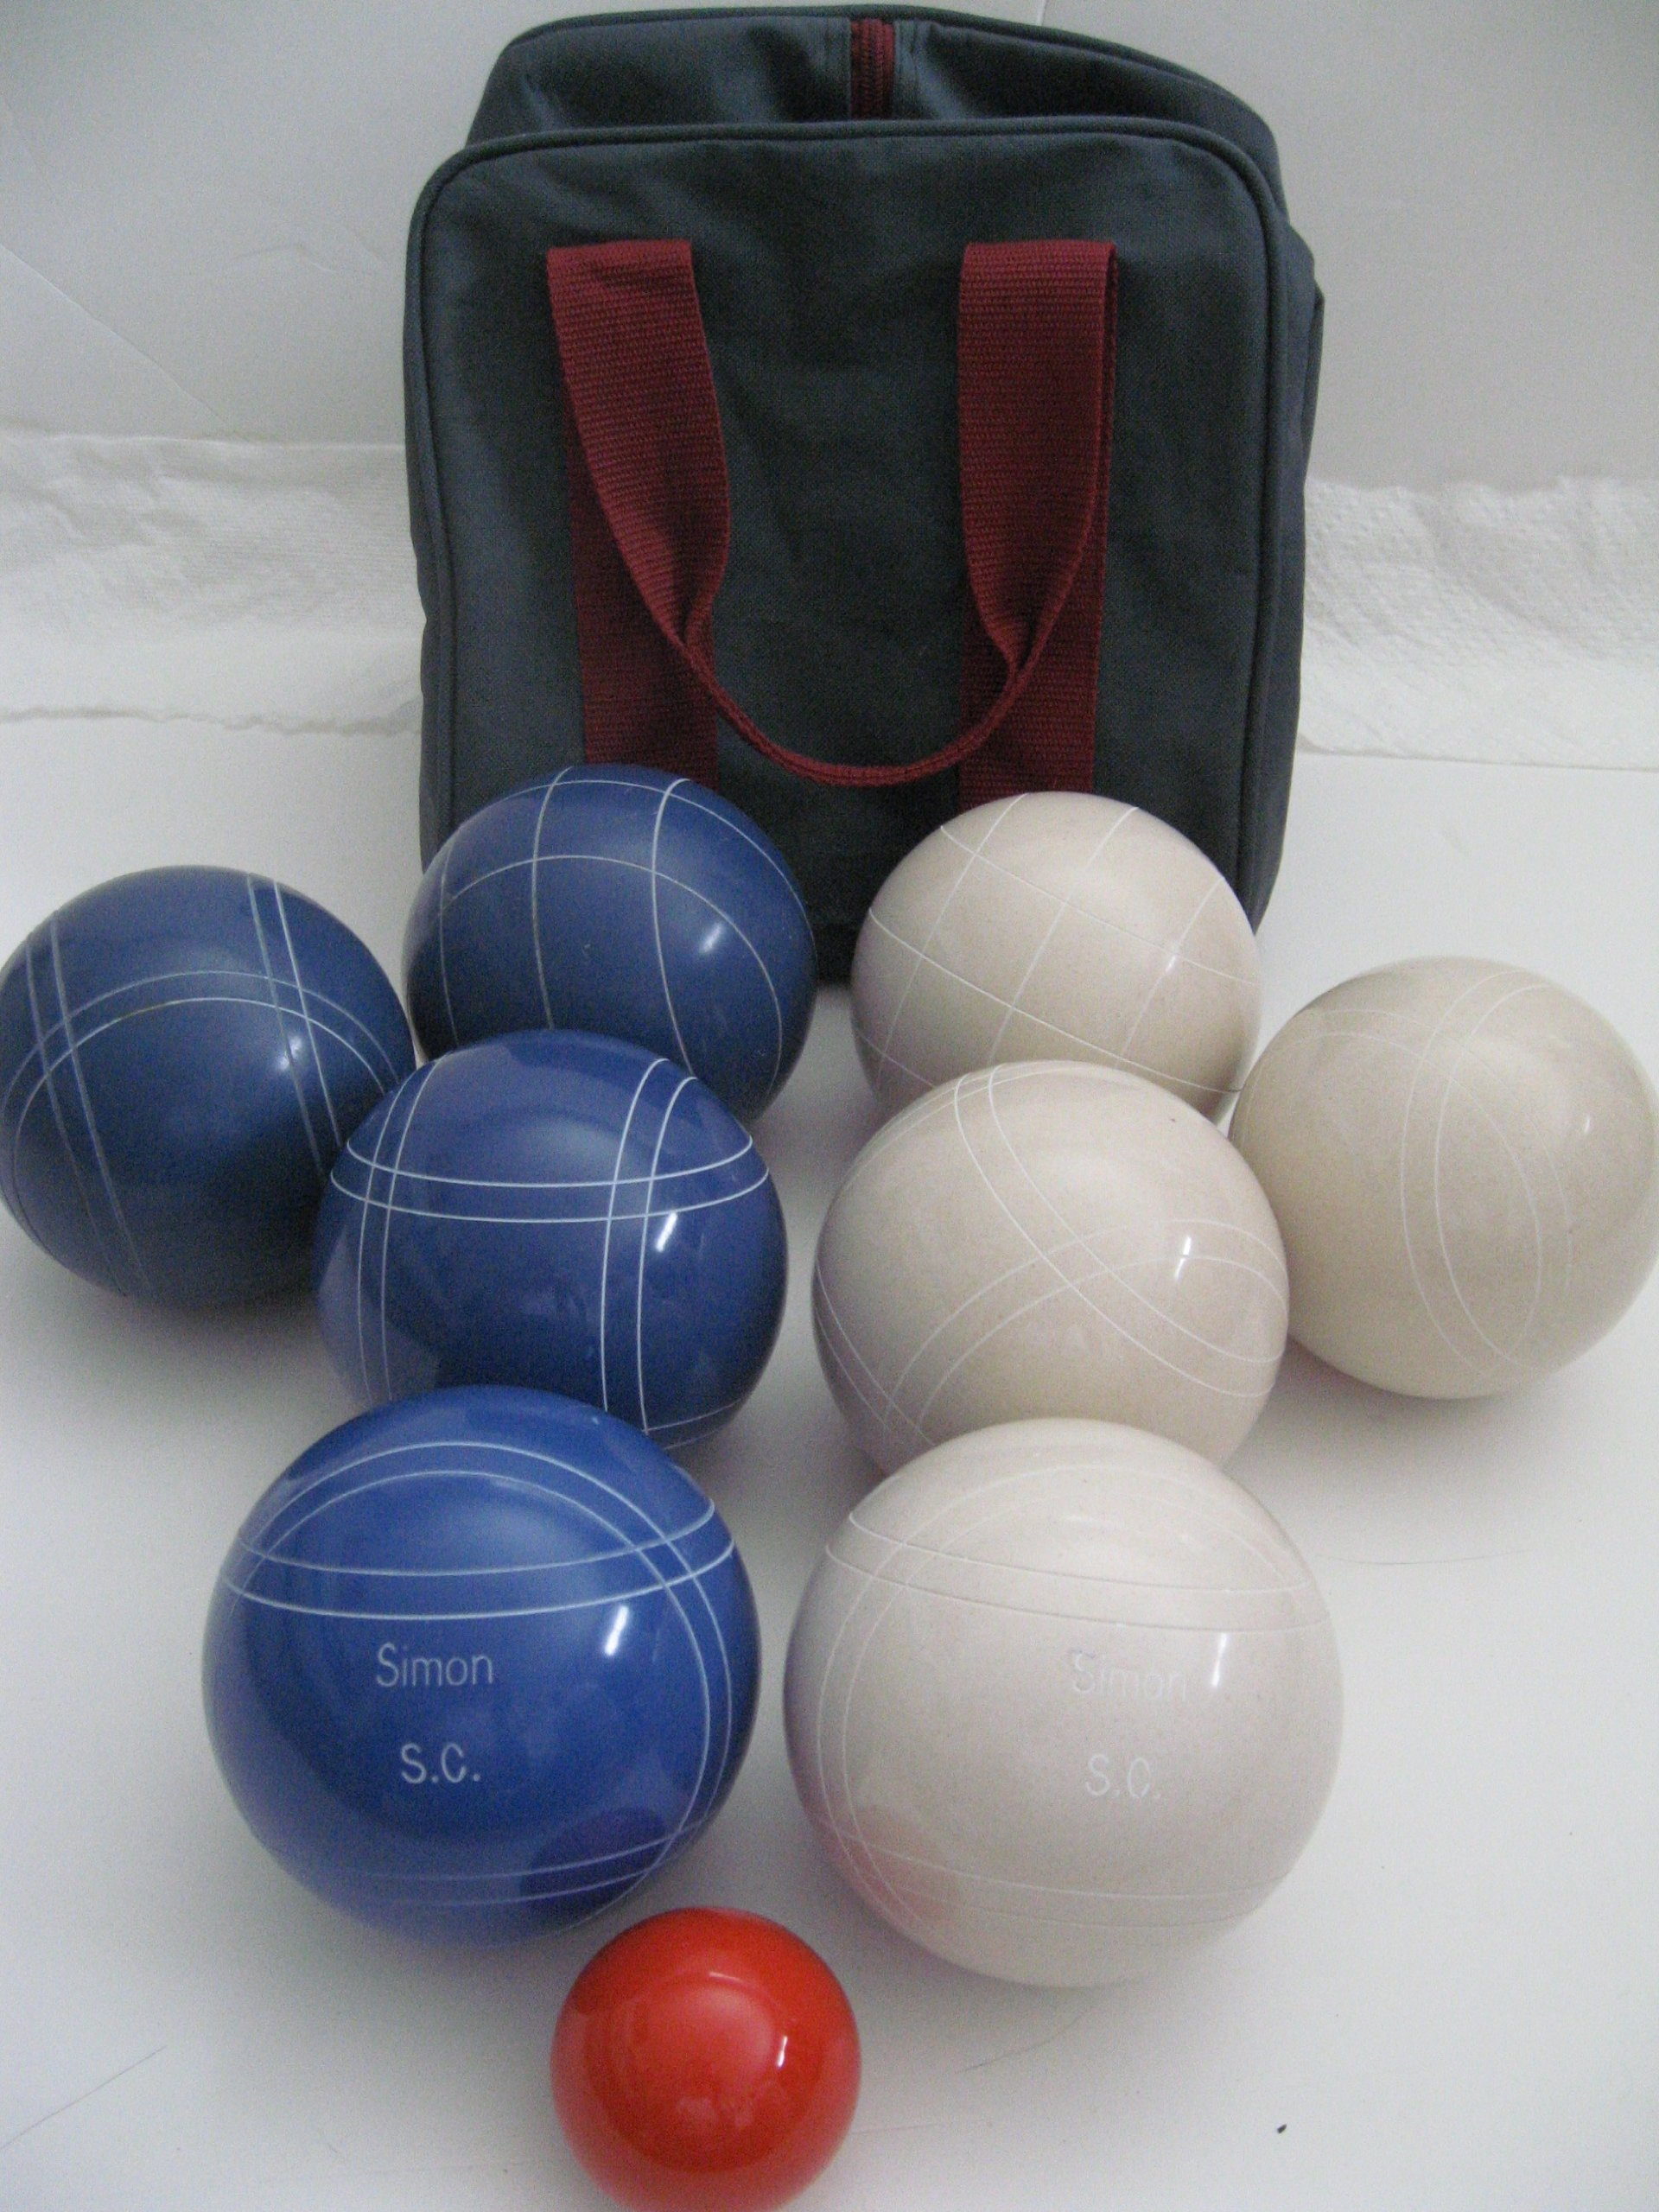 Premium Quality Engraved Bocce Package - 110mm Epco White and Blue Balls with Engraving [Misc.]